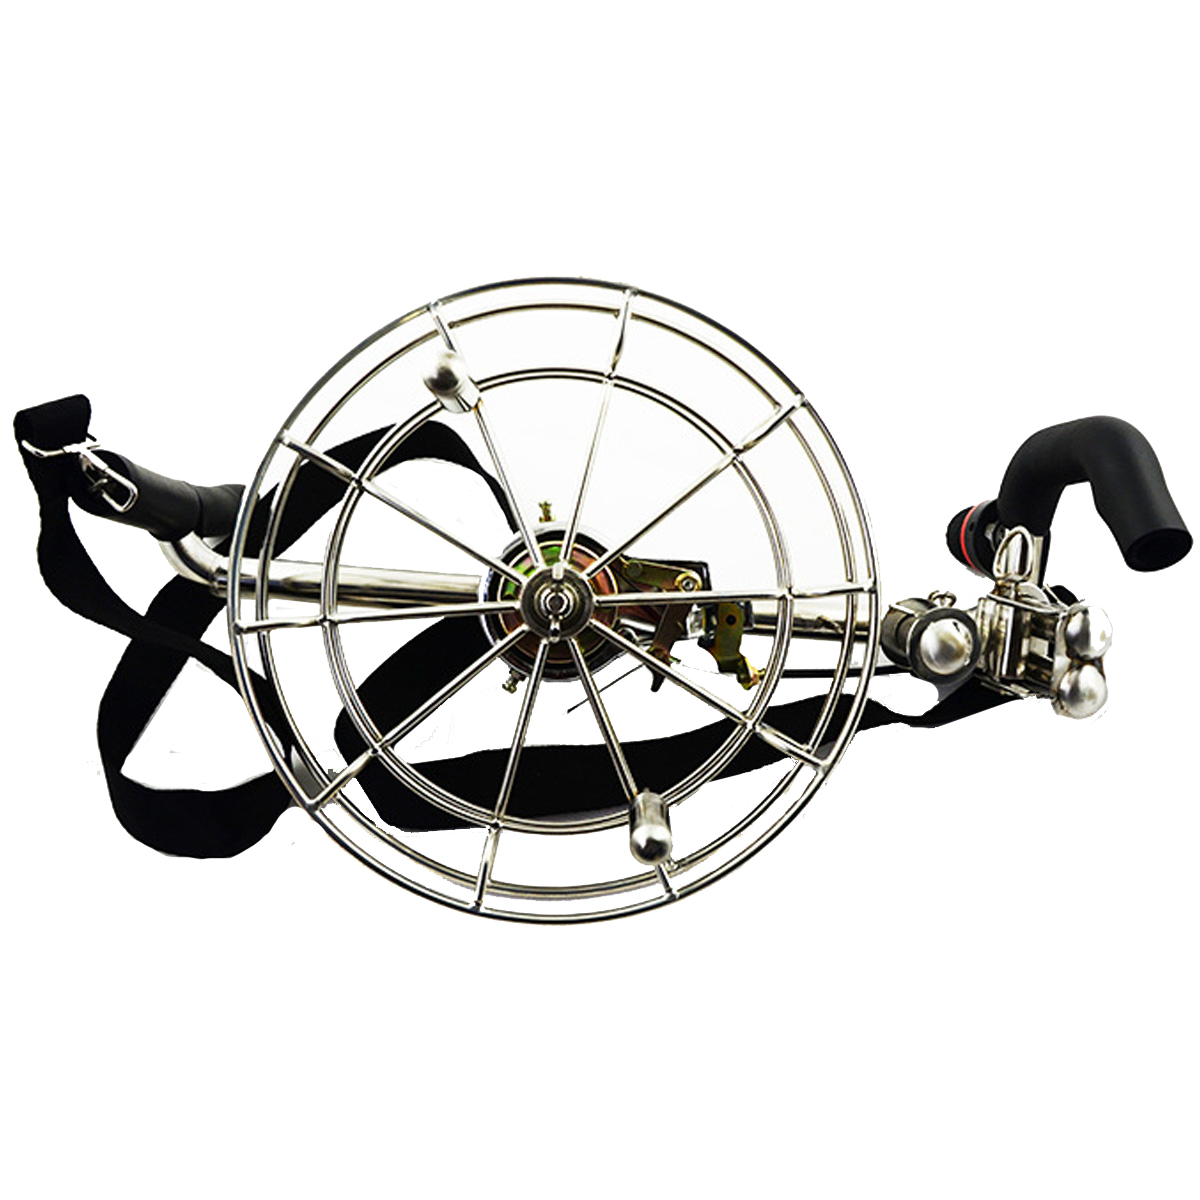 1200x1200 11 Strong Stainless Kite Line Winder Reel Brakes Control Adult Men